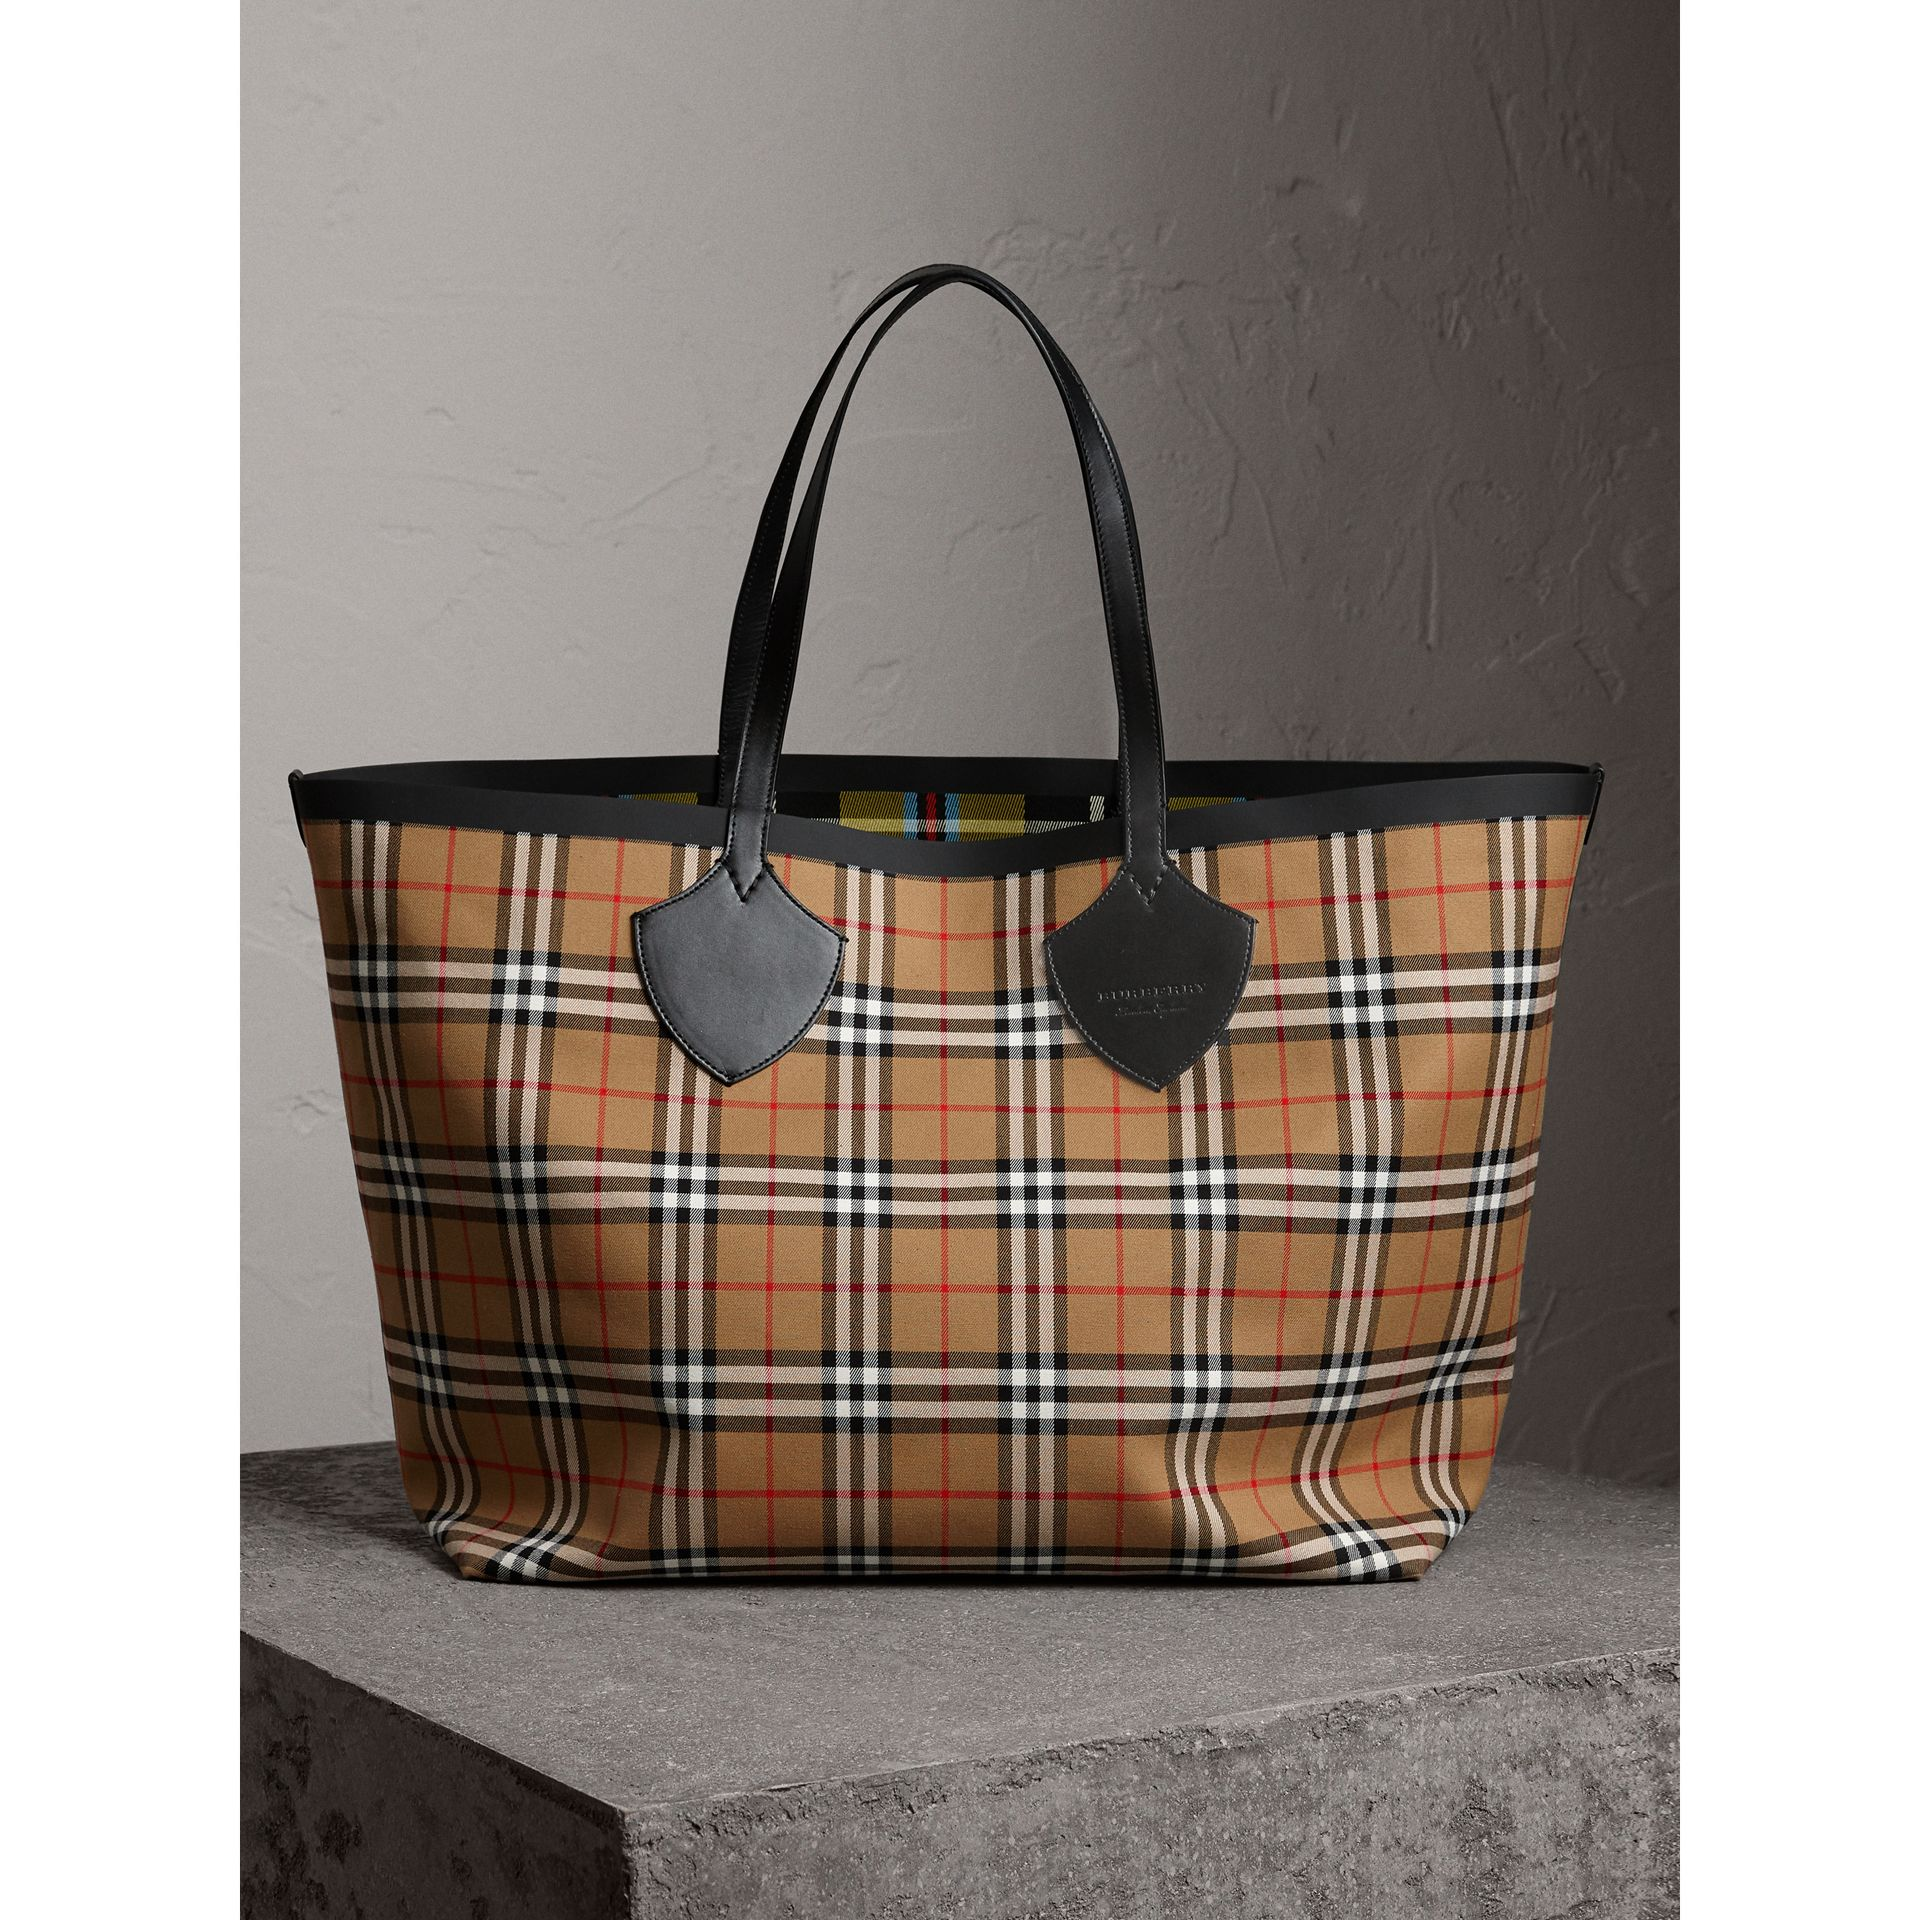 Sac tote The Giant réversible en coton à motif Vintage check (Jaune Antique) | Burberry - photo de la galerie 1